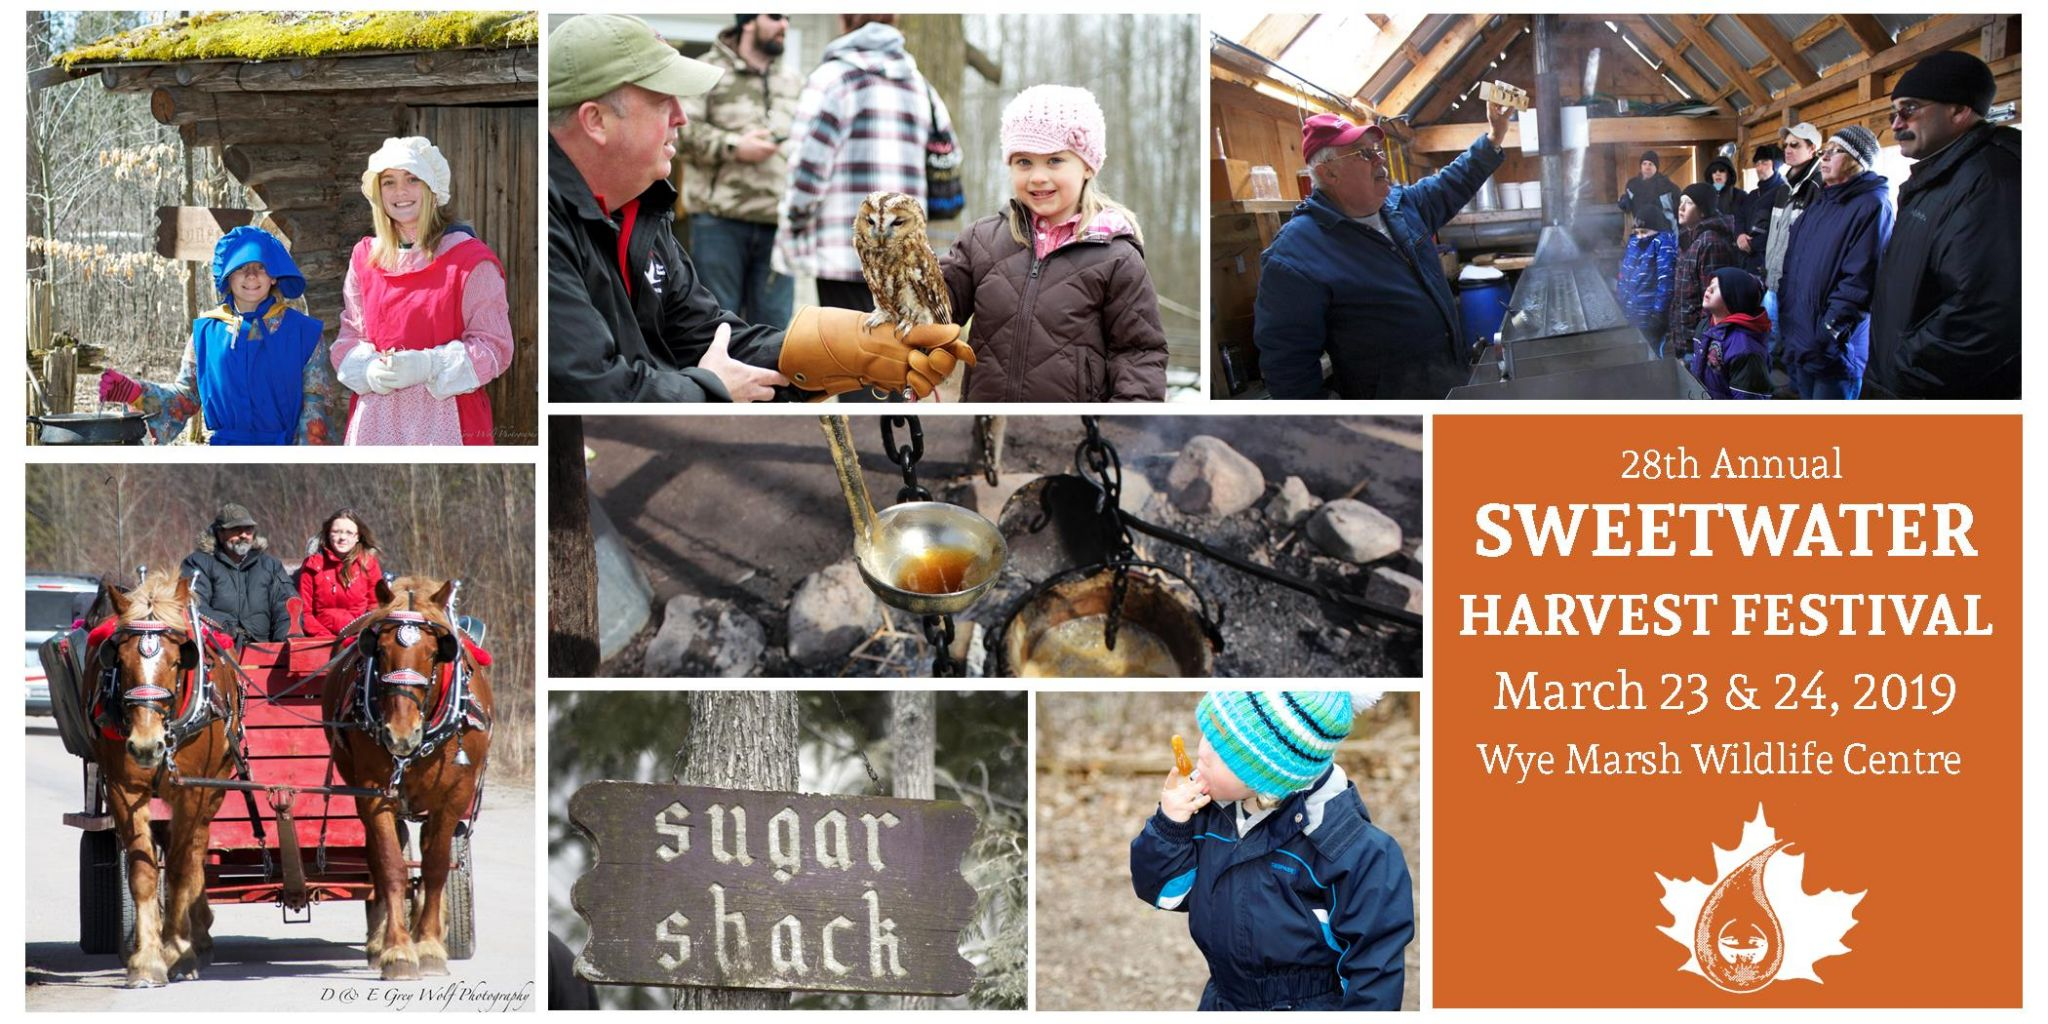 SW Collage with Info - 28TH ANNUAL SWEETWATER HARVEST FESTIVAL